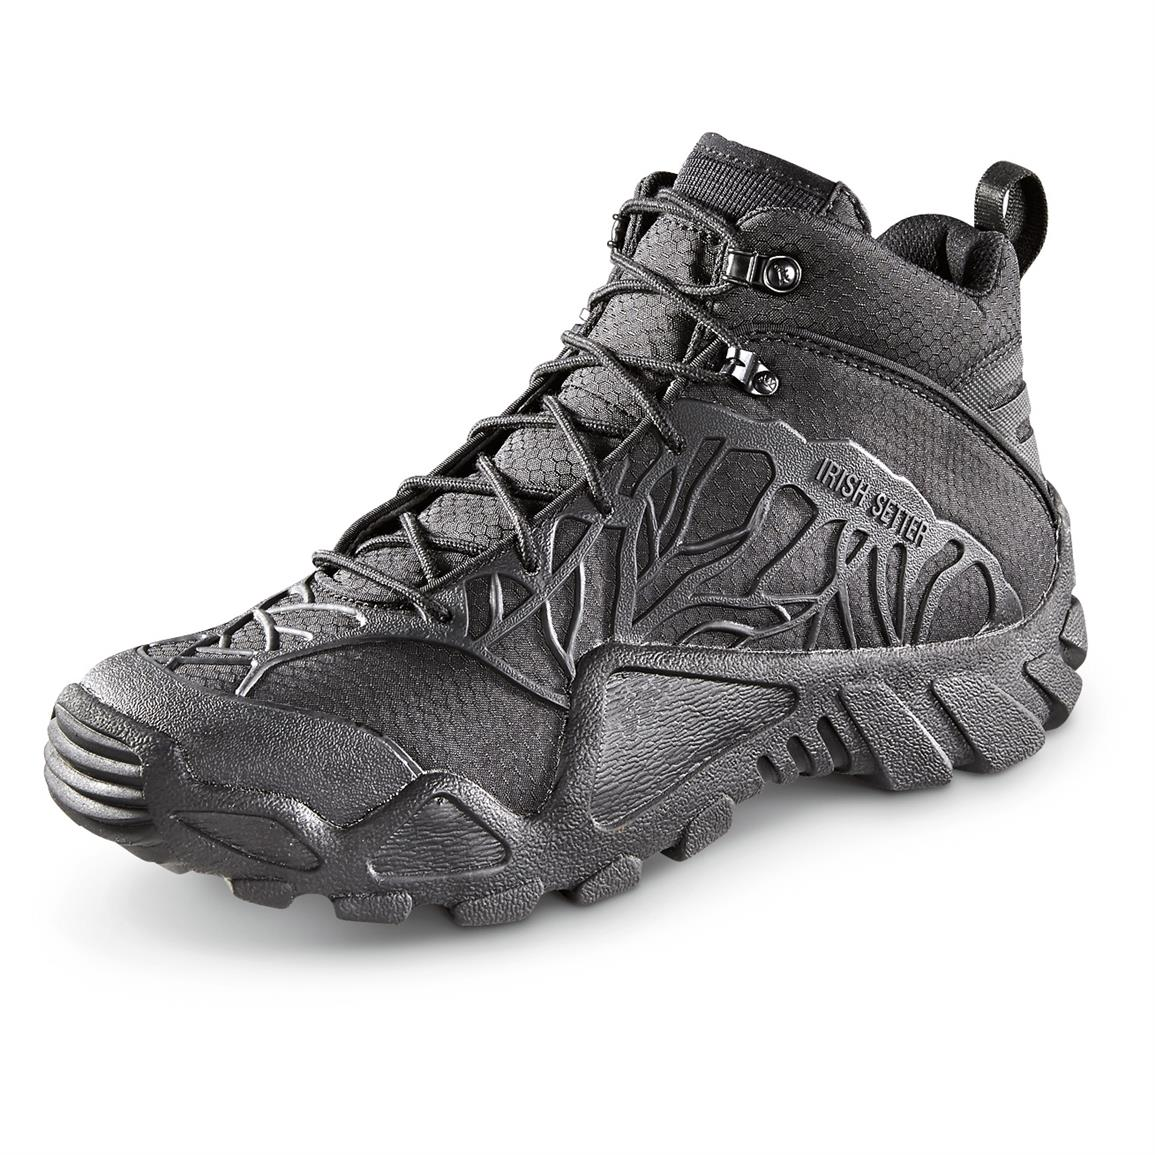 Irish Setter Men's Vaprtrek Hiker Boots